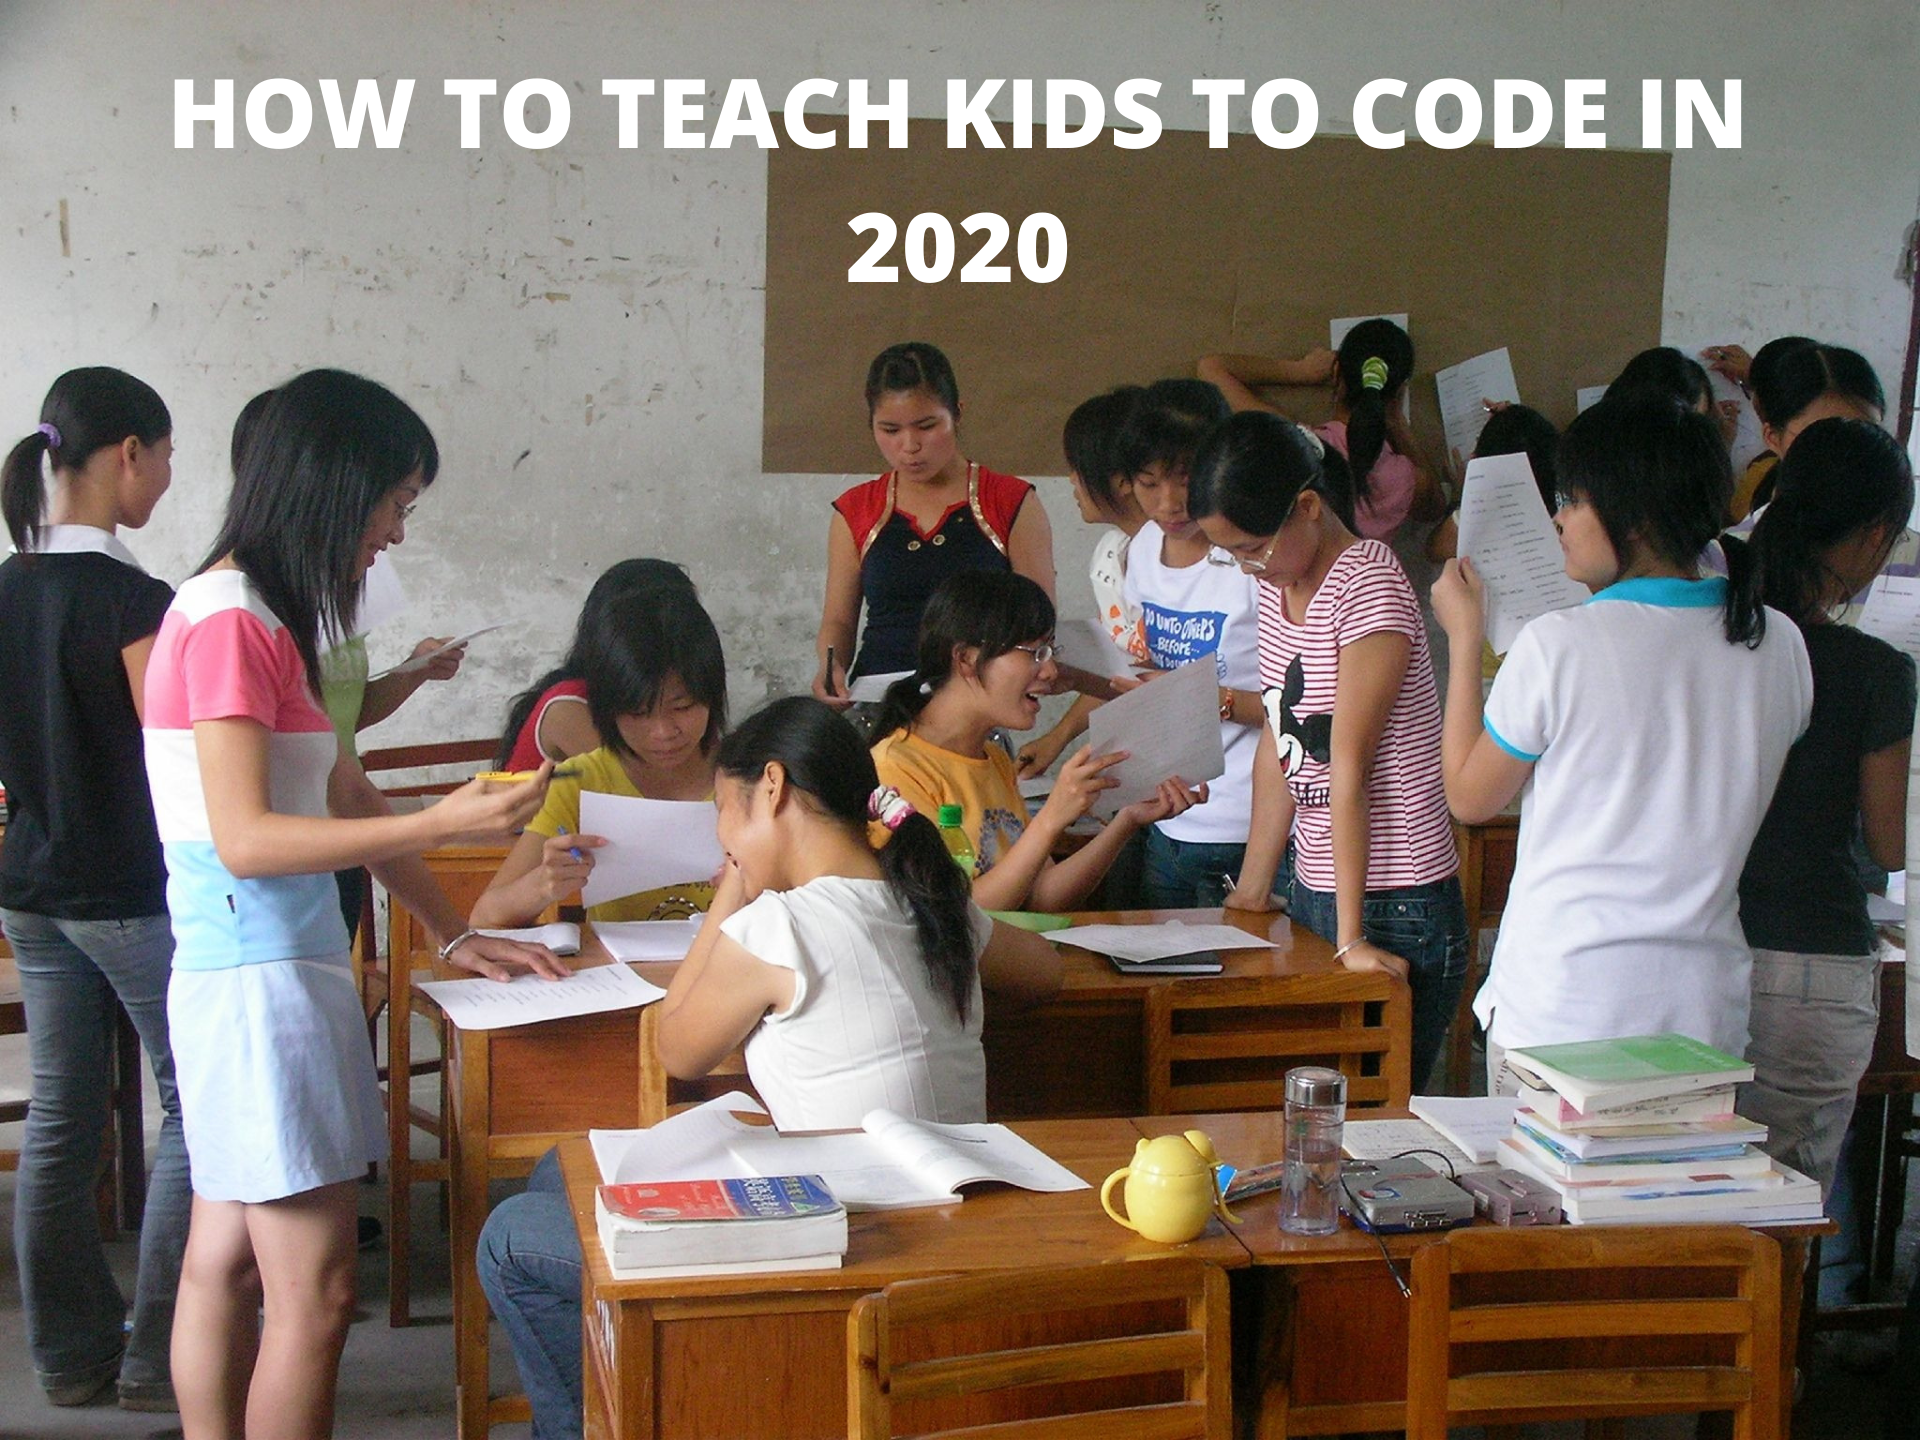 How To Teach Kids To Code Free in 2020